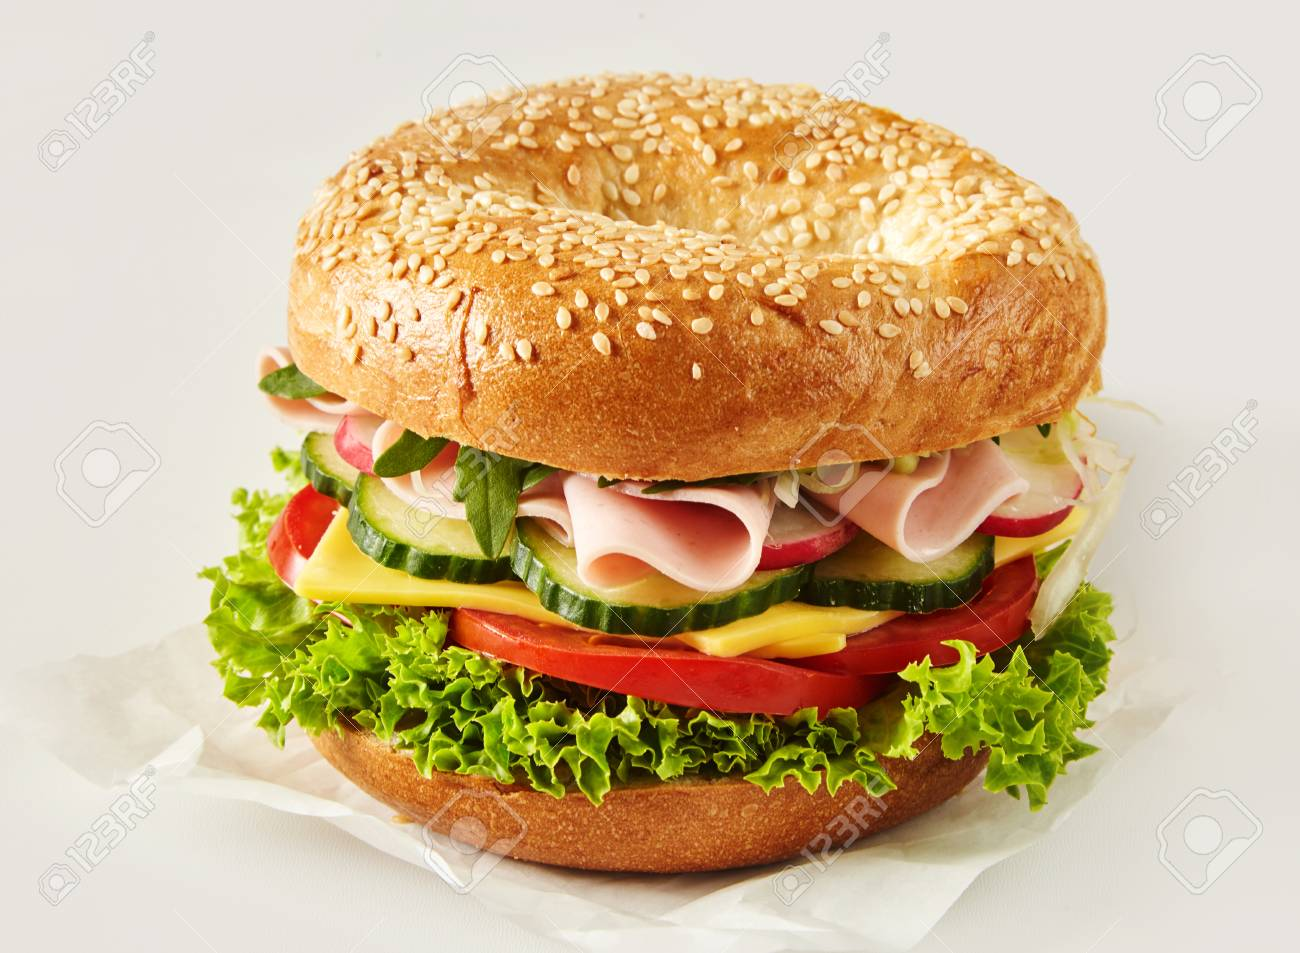 Crusty sesame bun or bagel with ham, cheese and salad filling on paper over white for advertising or a menu - 106485564